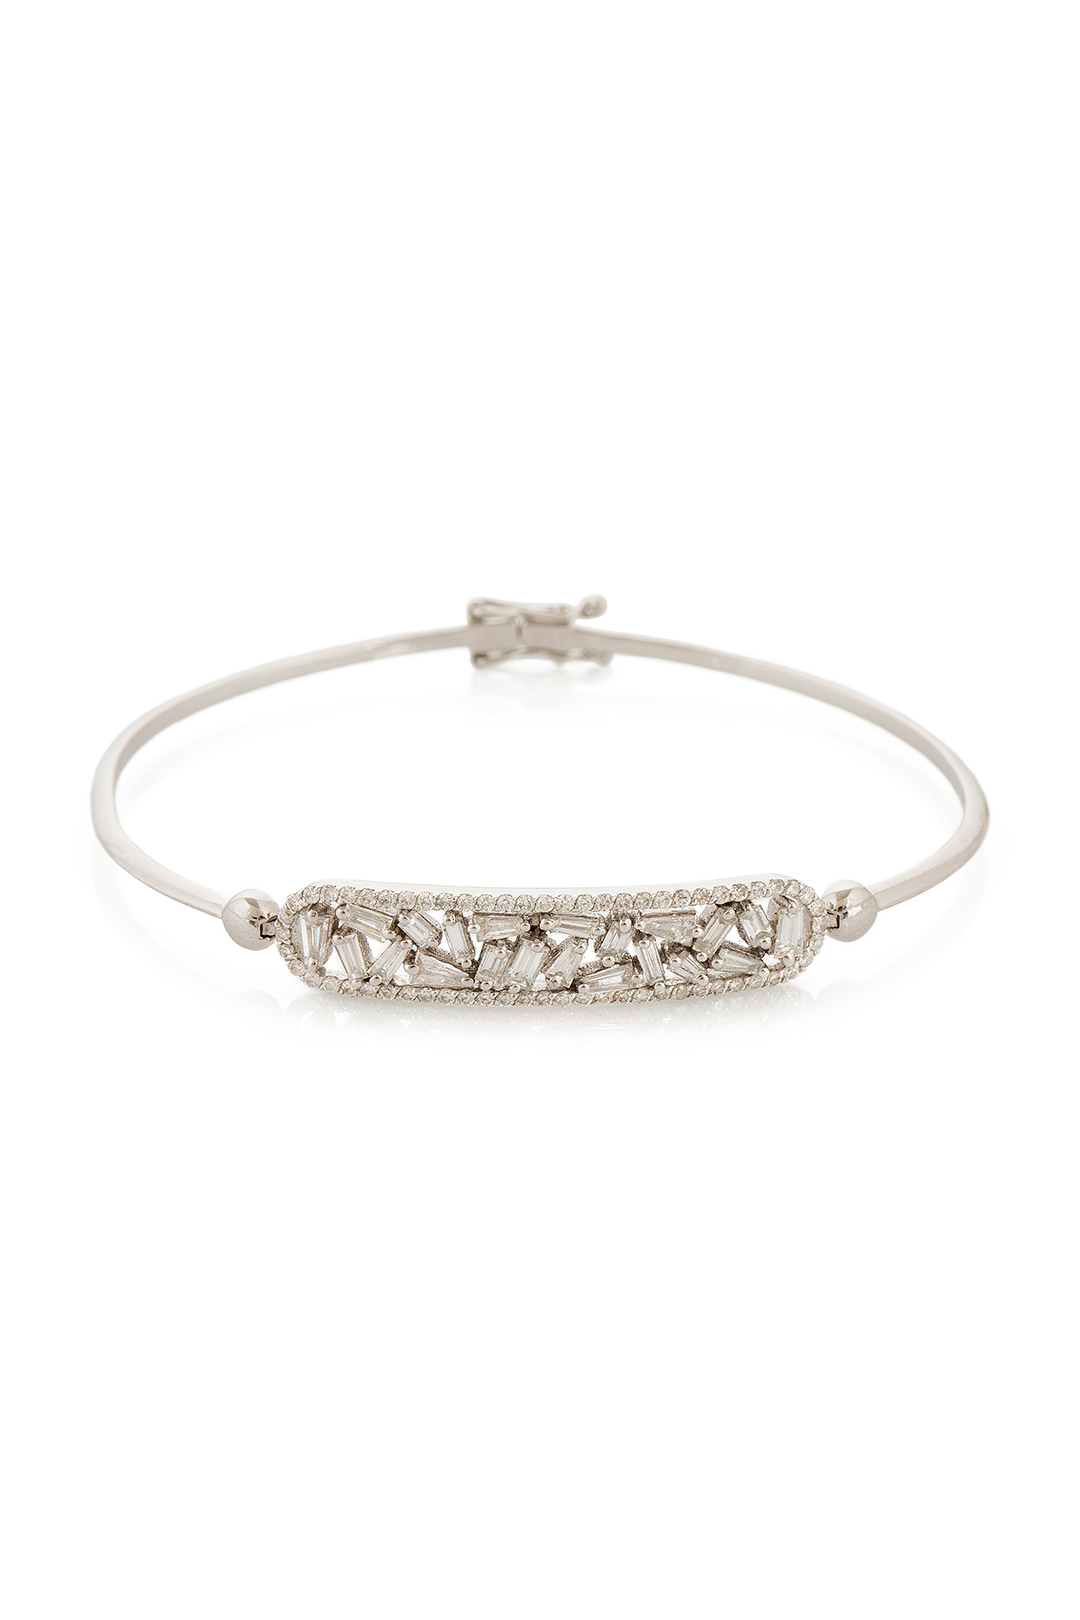 FULL DIAMOND RECTANGLE BRACELET